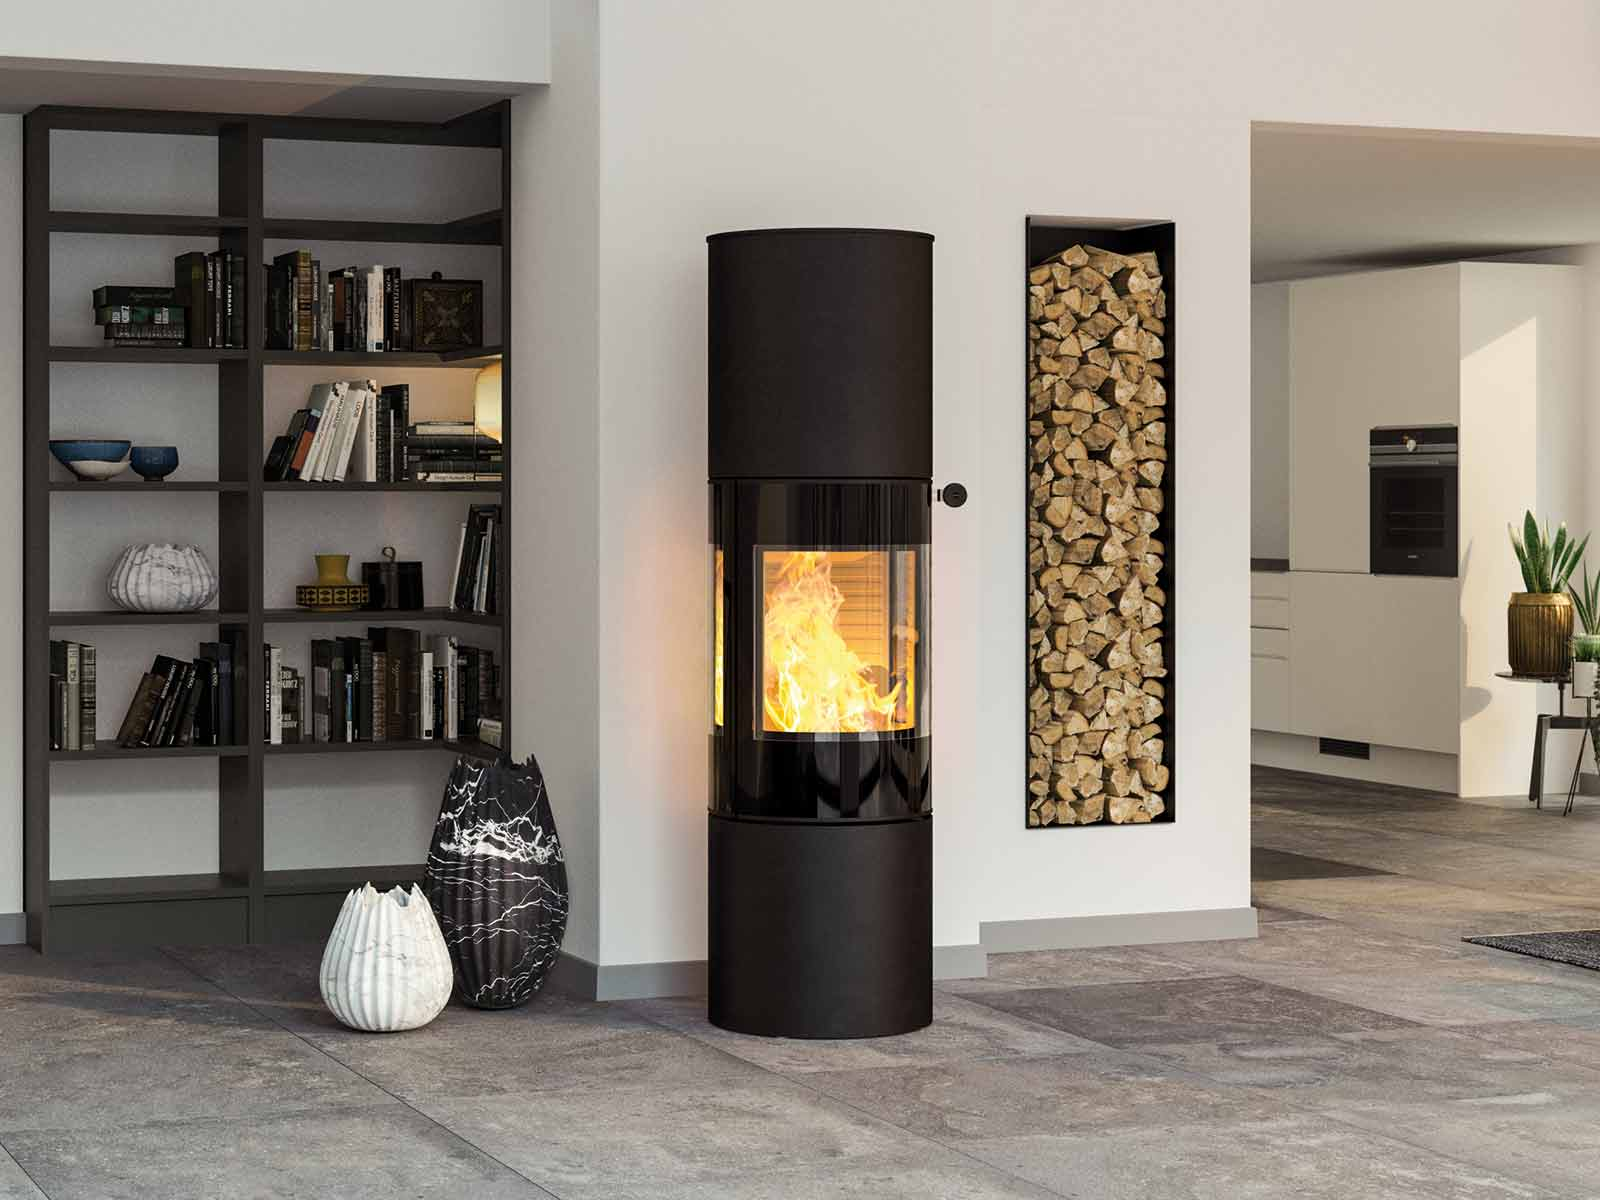 Attika Kaminofen Online Shop Attika Blog Useful Information About The Stove And Fireplaces